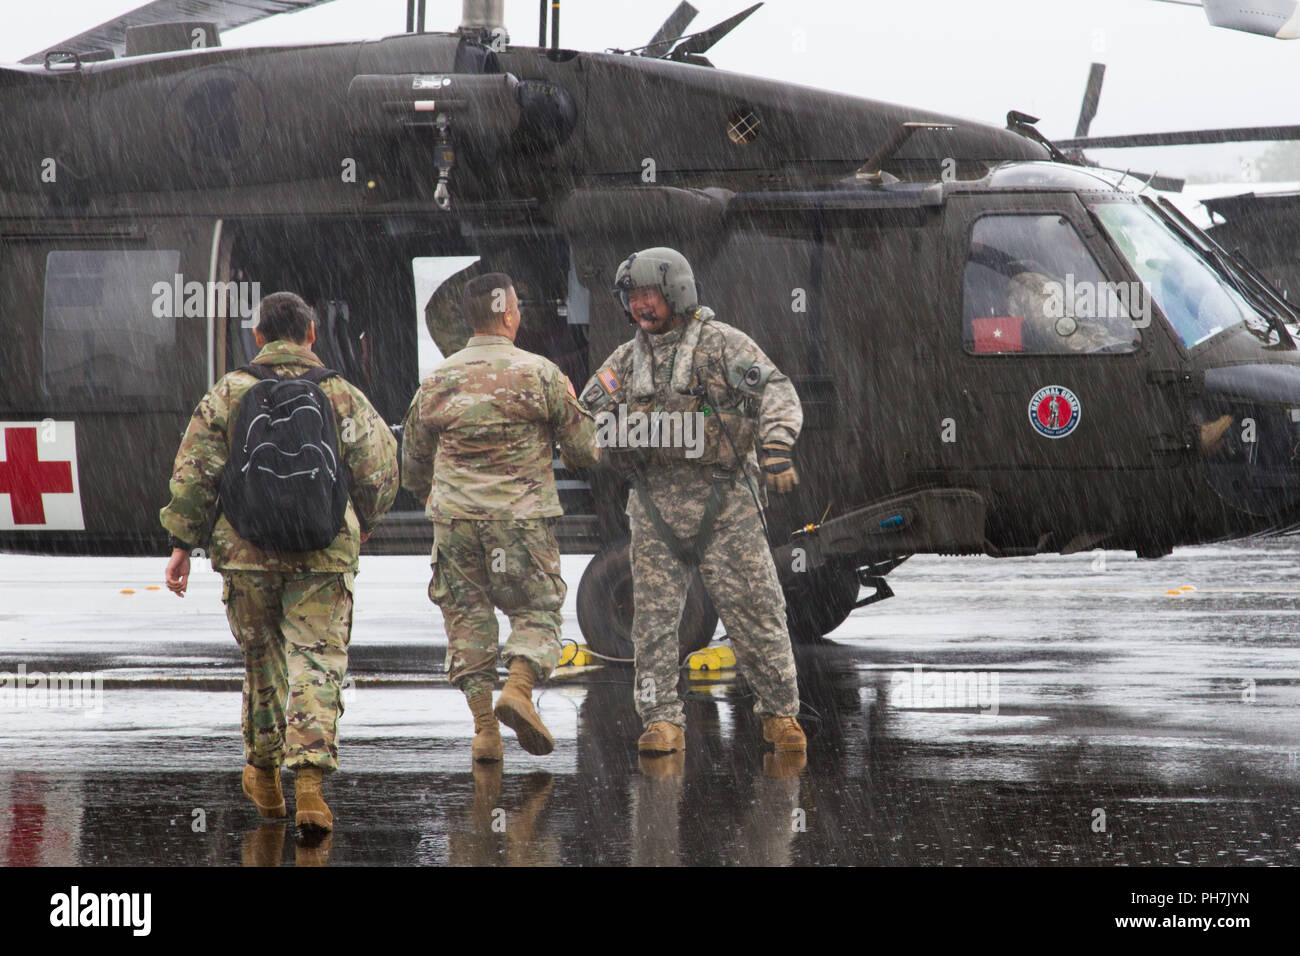 Hilo, Hawaii, USA. 30th Aug, 2018. Brig. Gen. Kenneth Hara, Deputy Adjutant General, Hawaii Army National Guard and Joint Task Force 5-0 commander, lands at Hilo International Airport, Hilo, Hawaii, to conduct briefings to Hawaii National Guard and Active Duty Soldiers responding to Hurricane Lane on Aug. 27, 2018. Local authorities and the state of Hawaii, through JTF 5-0, requested HH-60M Black Hawk helicopters with hoist capability to assist local authorities with recovery operations on the Isle of Hawaii. JTF 5-0 is a joint task force led by a dual status commander that - Stock Image